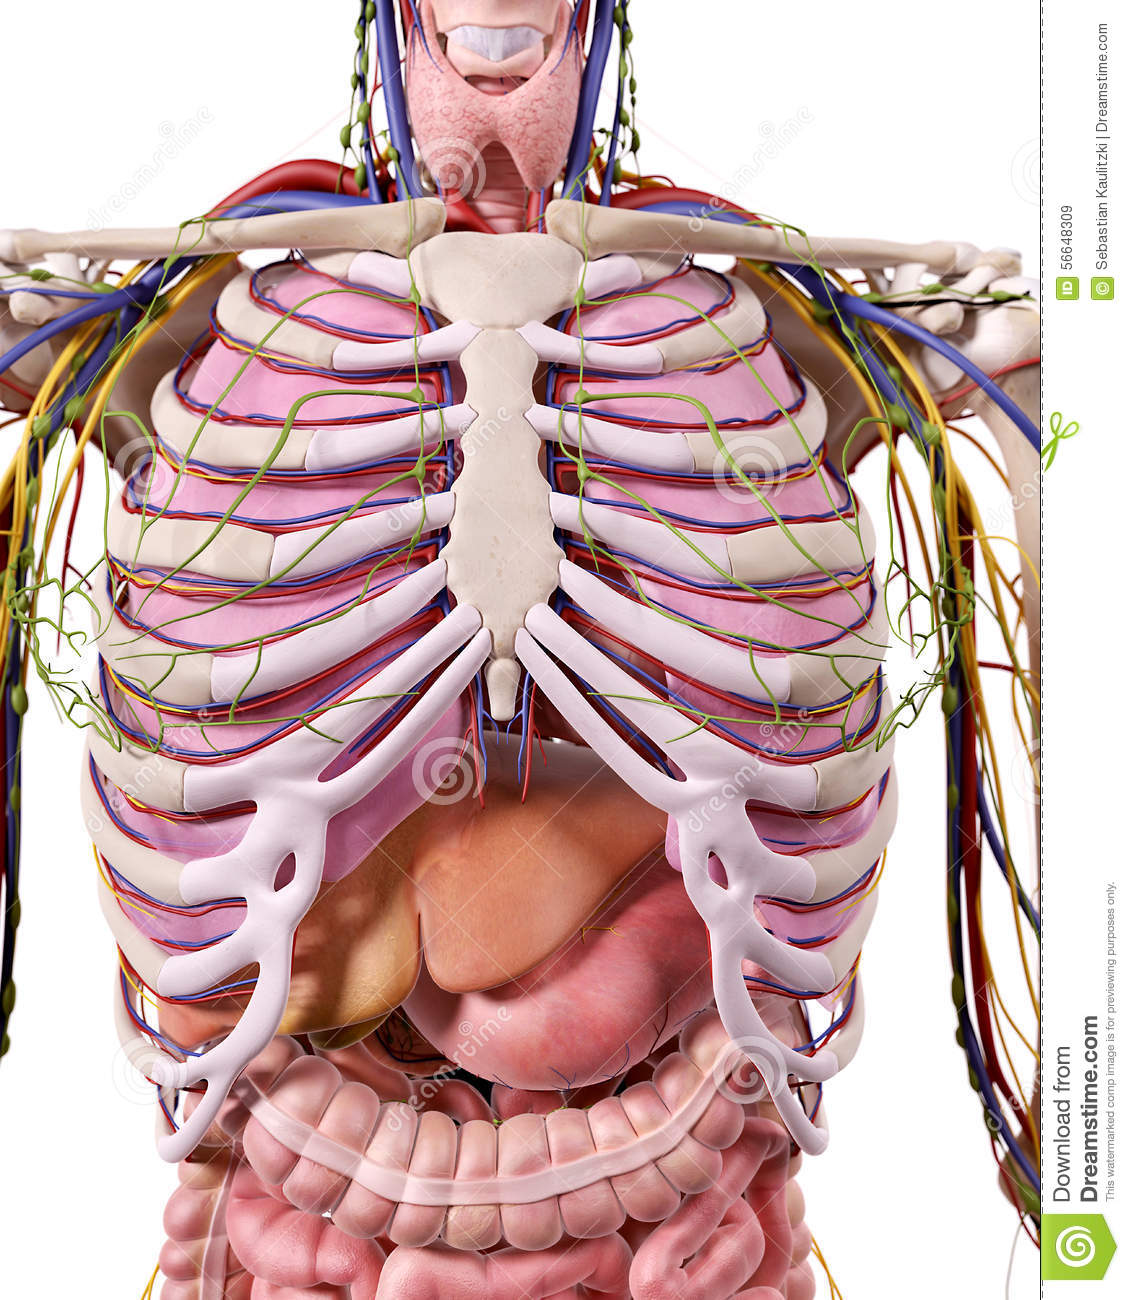 L\'anatomie de thorax illustration stock. Illustration du ...